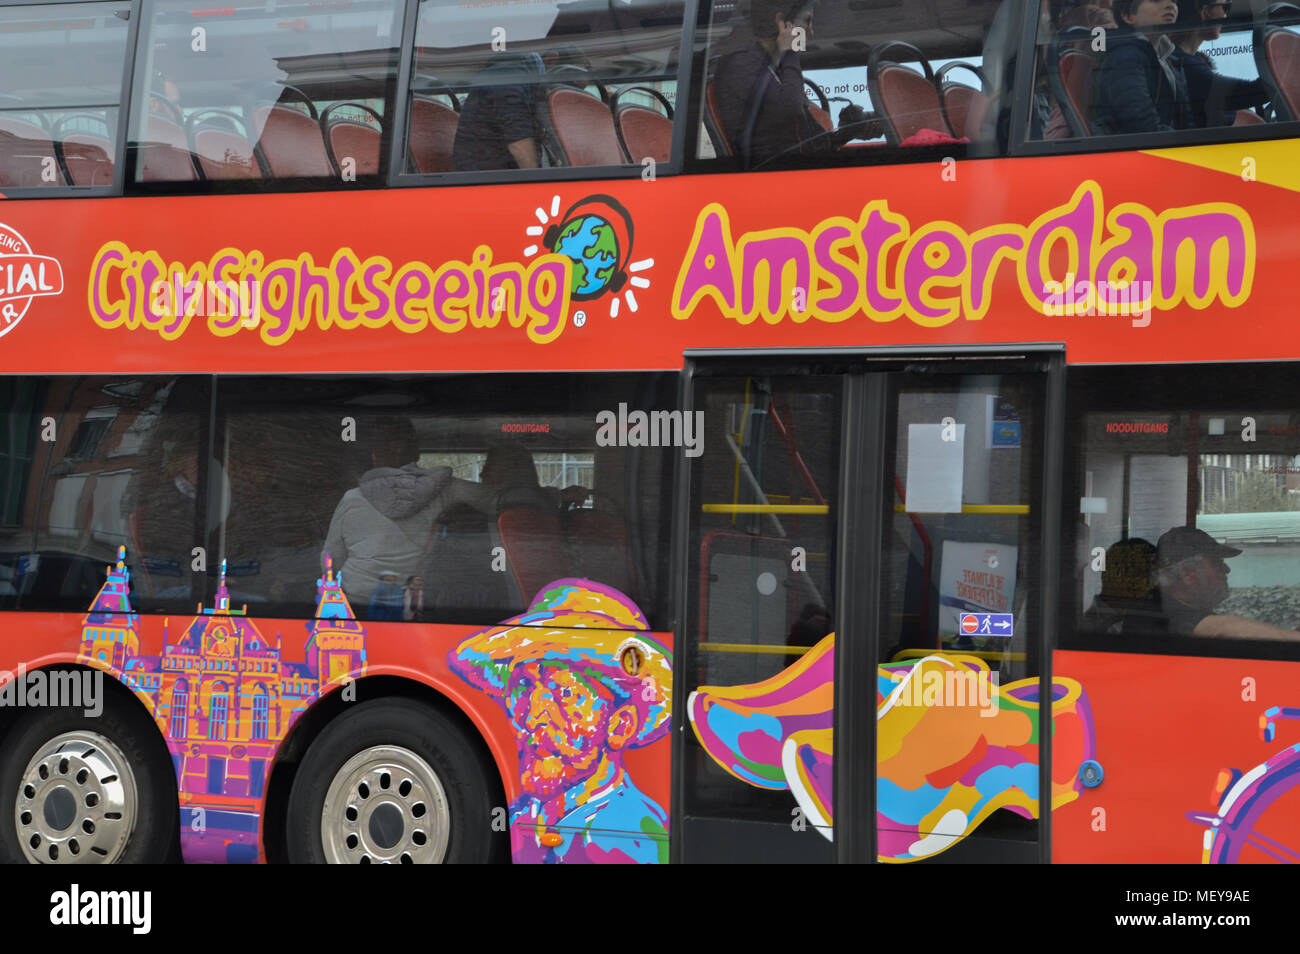 City Sightseeing Bus in Amsterdam Die Niederlande Stockbild